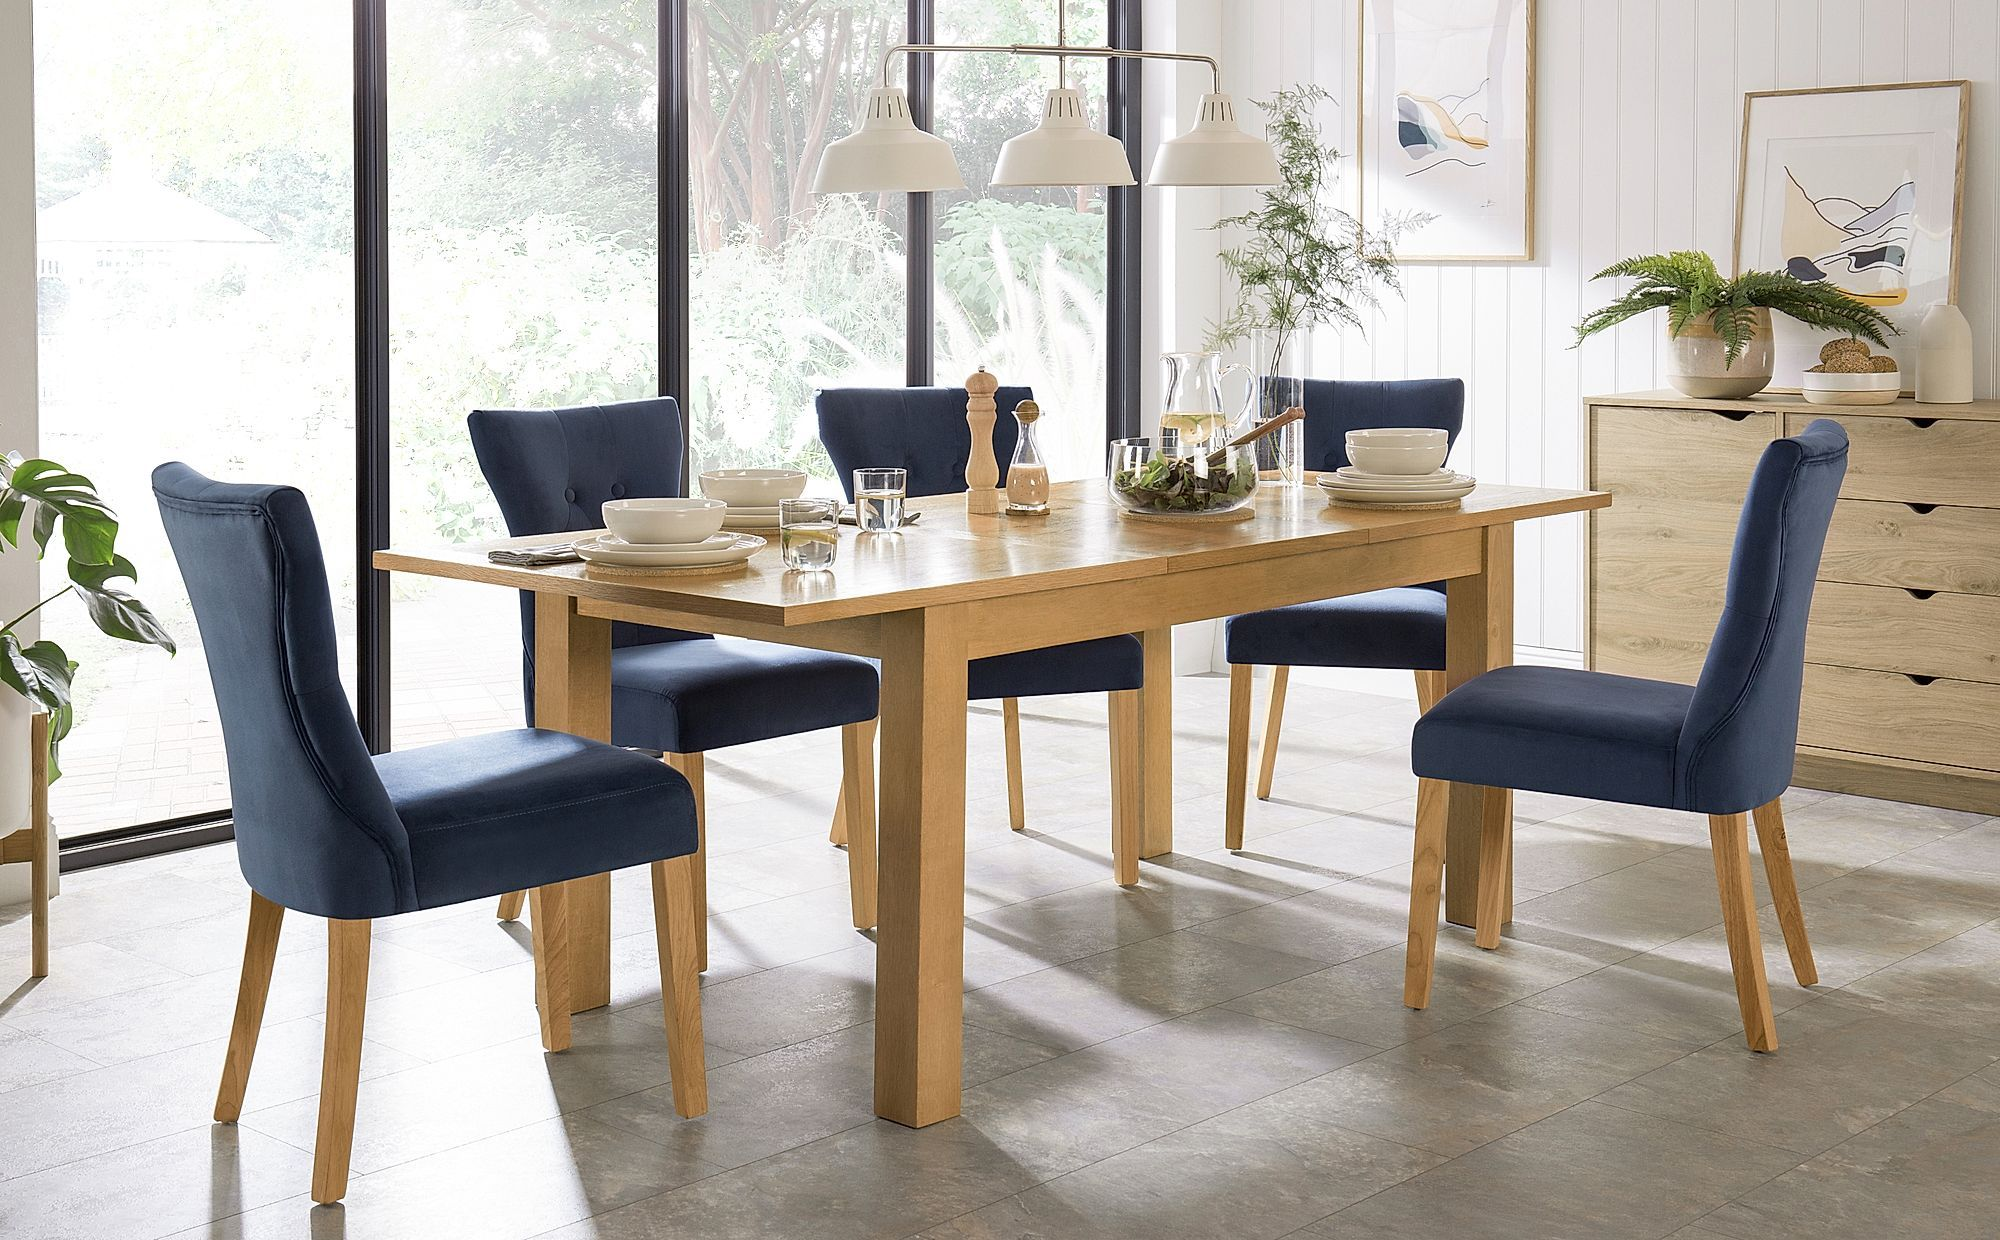 Hamilton Oak 150 200cm Extending Dining Table With 4 Bewley Blue